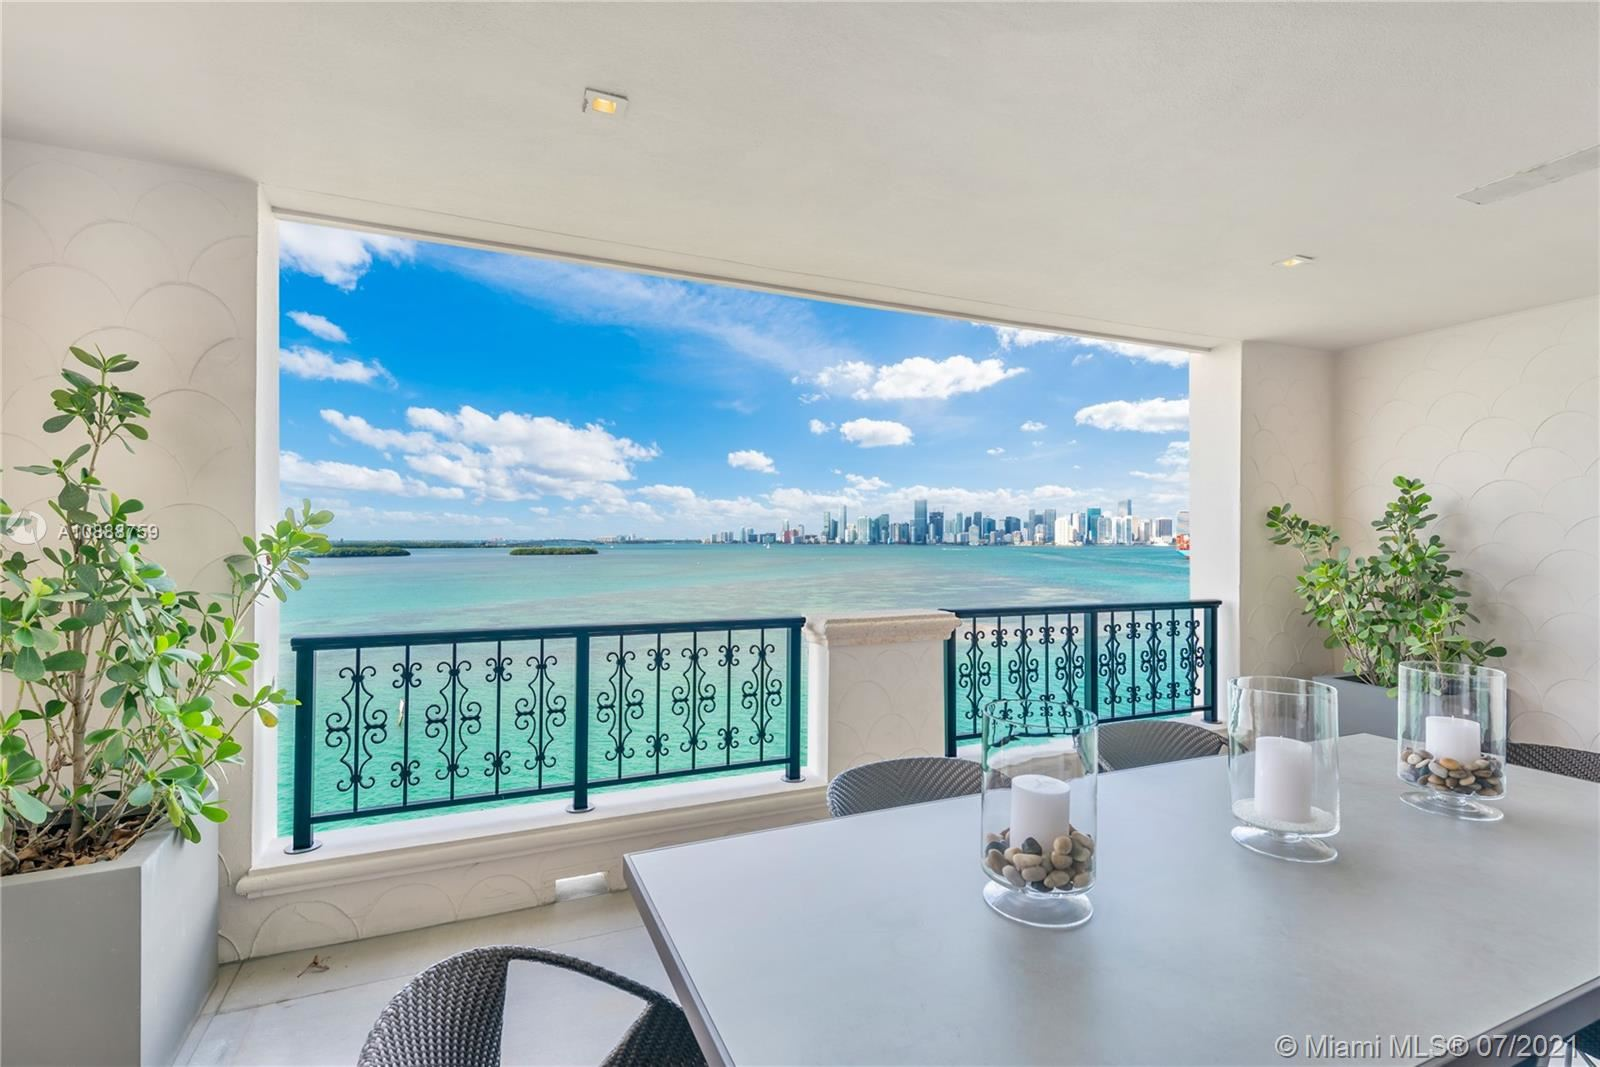 Photo 52 of Listing MLS a10888759 in 5282 Fisher Island Dr #5282 Miami FL 33109